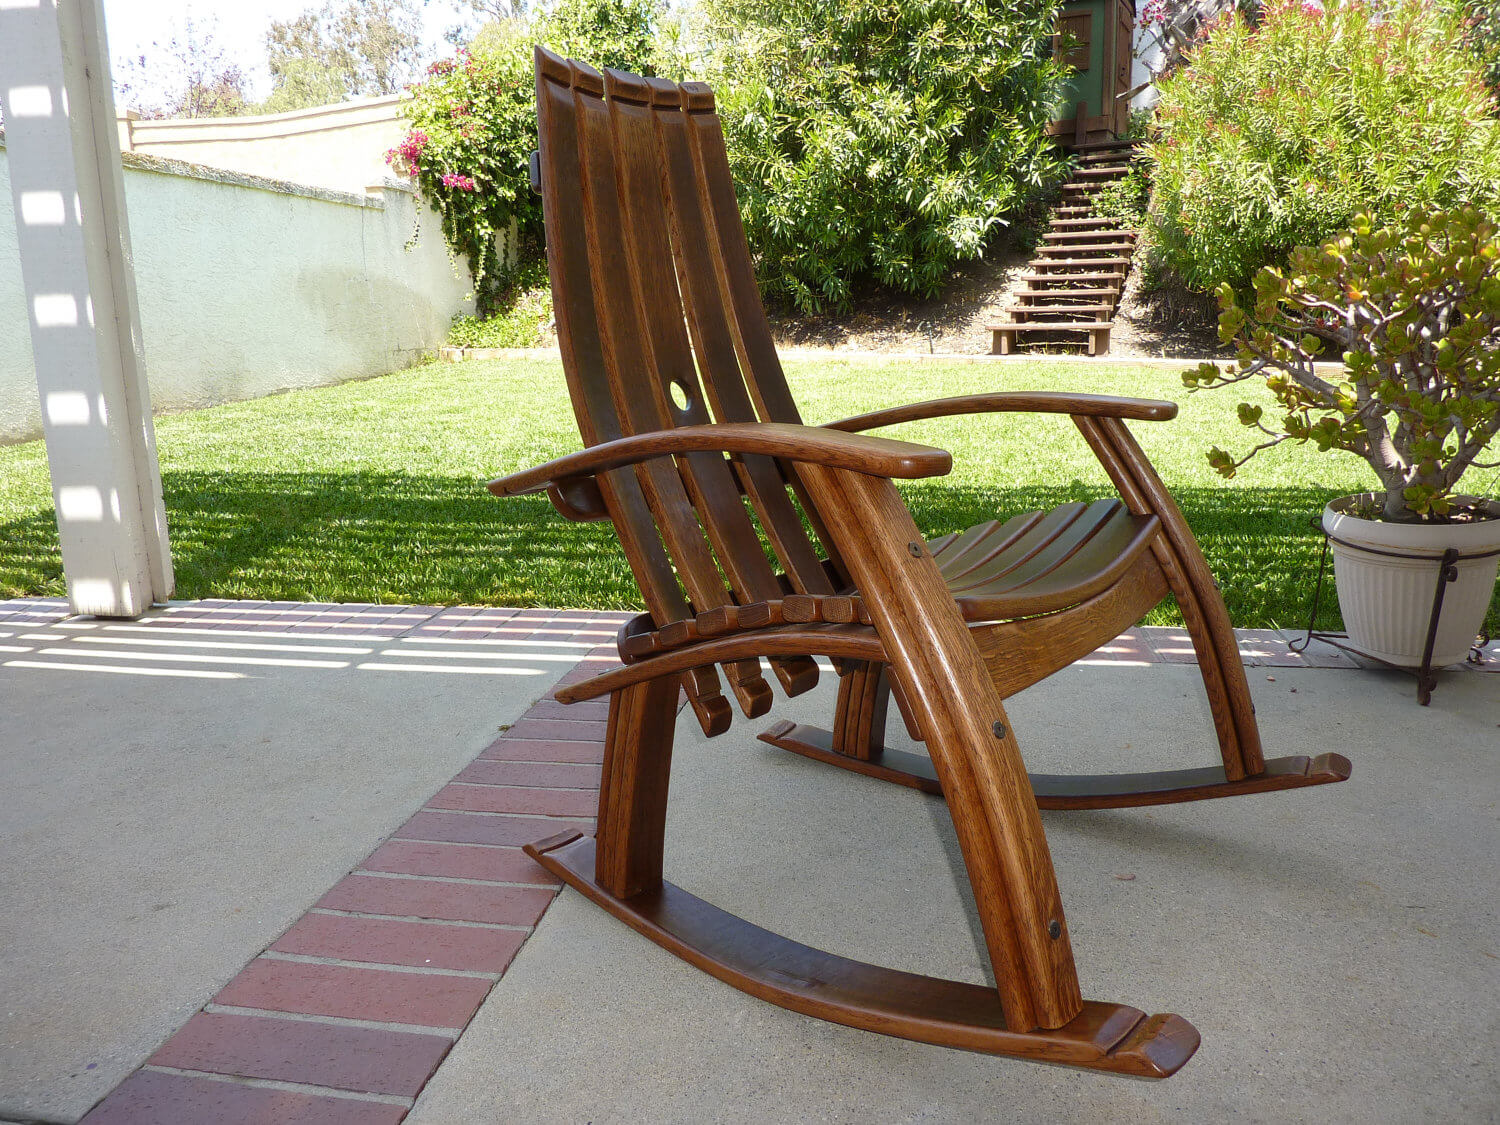 Phenomenal Handmade Rocking Chair Gmtry Best Dining Table And Chair Ideas Images Gmtryco